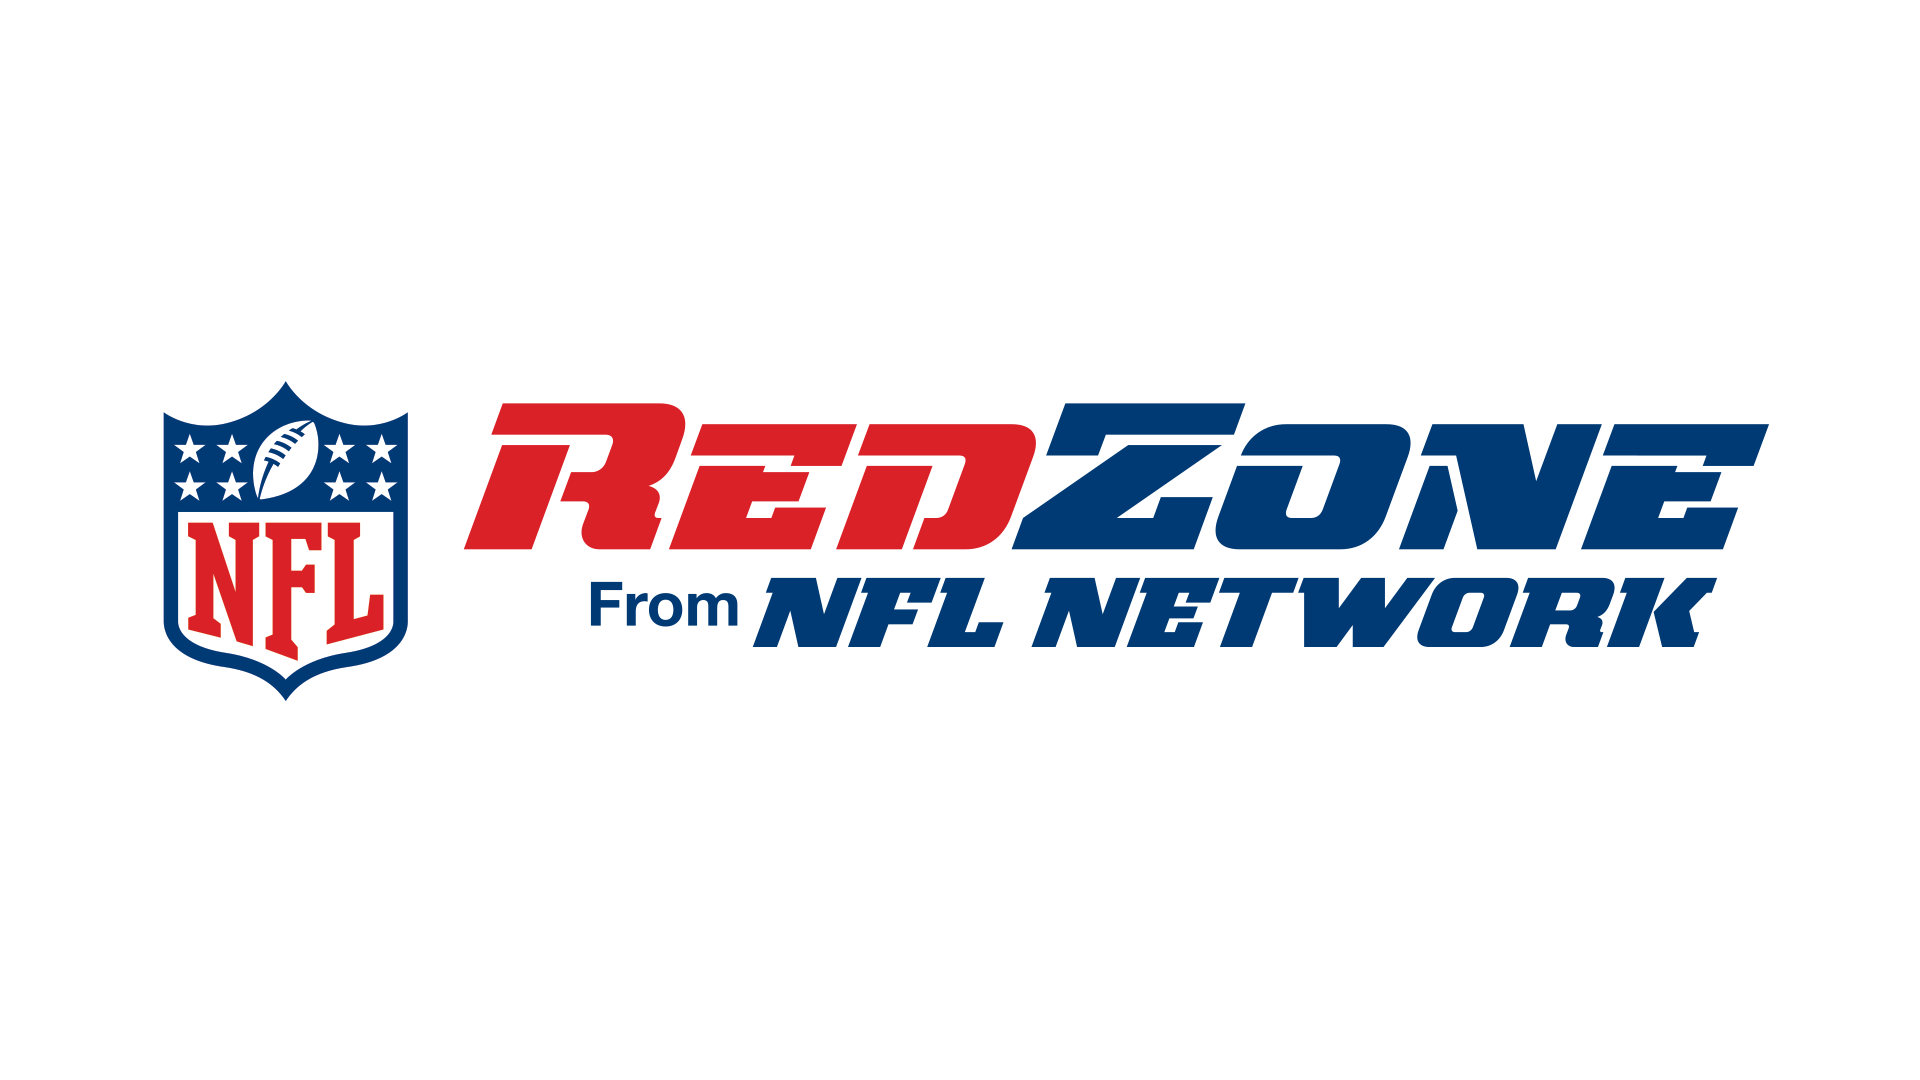 NFL now offering NFL Network RedZone over-the-top to mobile users for $4.99 a month